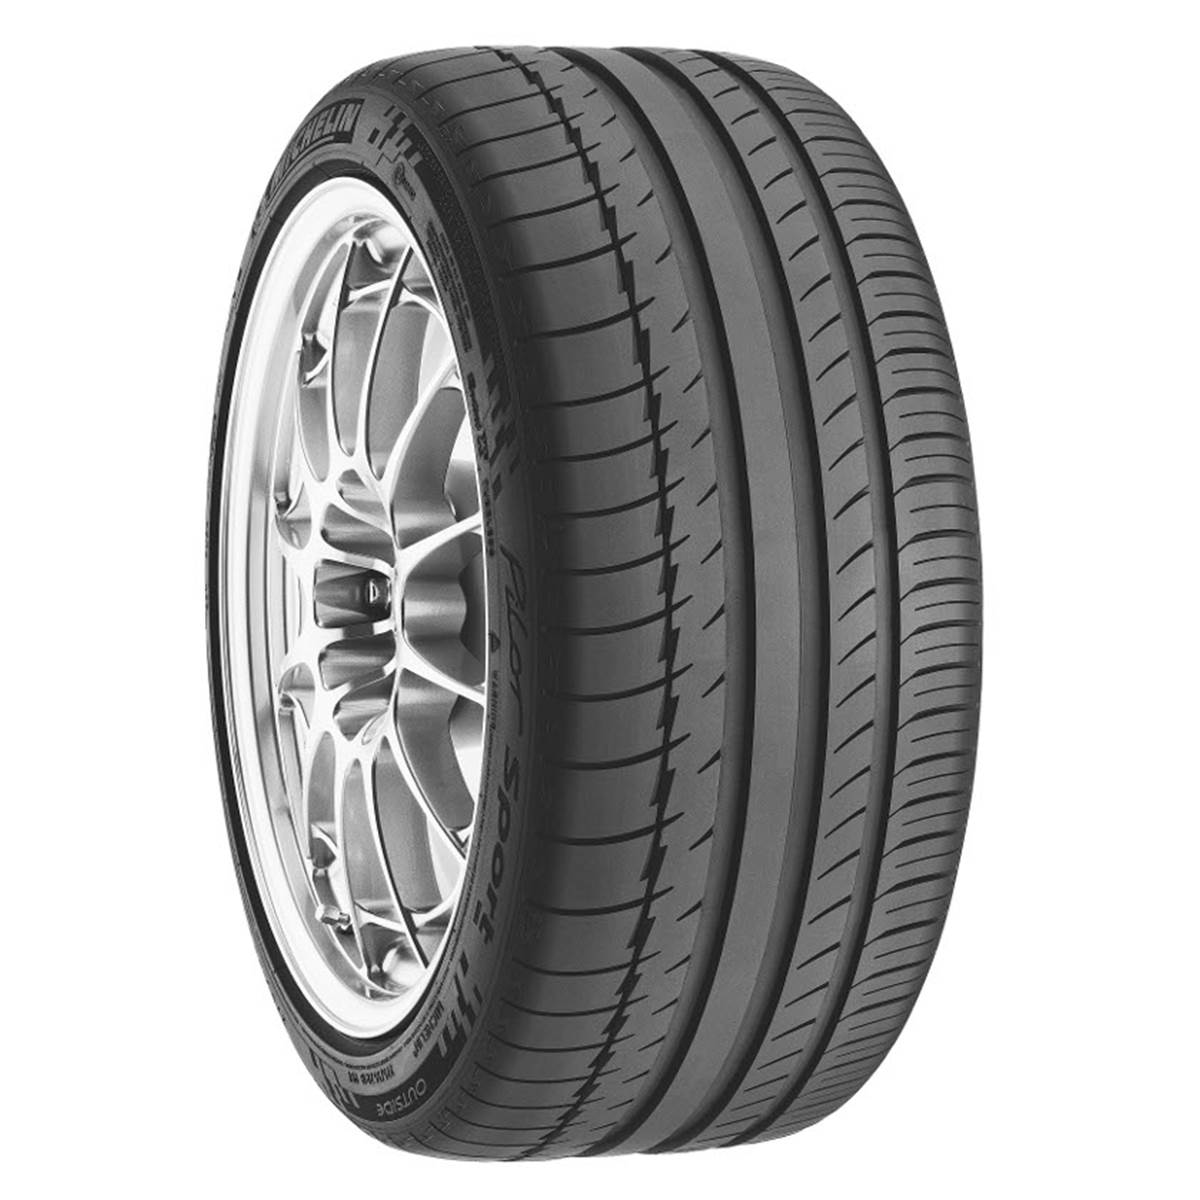 Pneu Michelin 335/30R18 102Y Pilot Sport Ps2